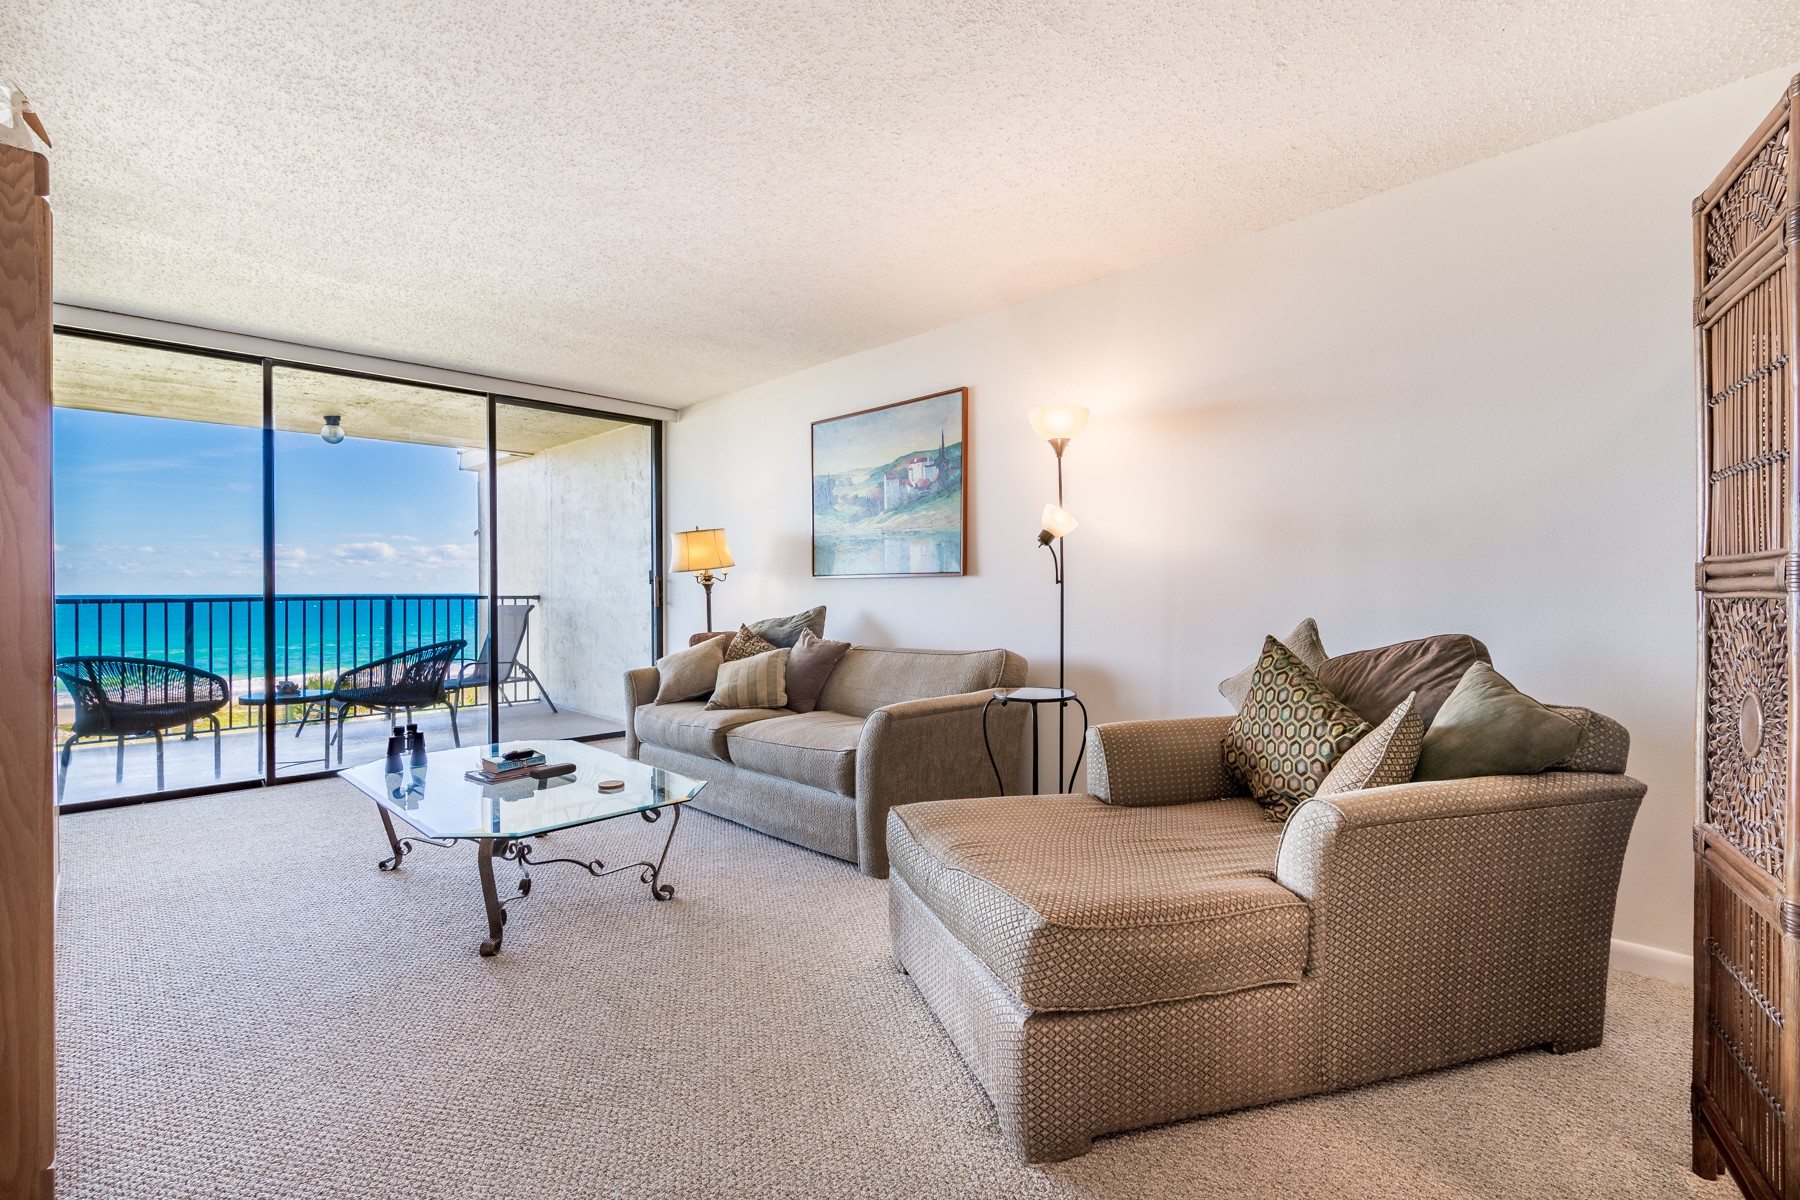 Additional photo for property listing at Top Floor Condo with Ocean Views 1101 S Miramar #405 Indialantic, Florida 32903 United States